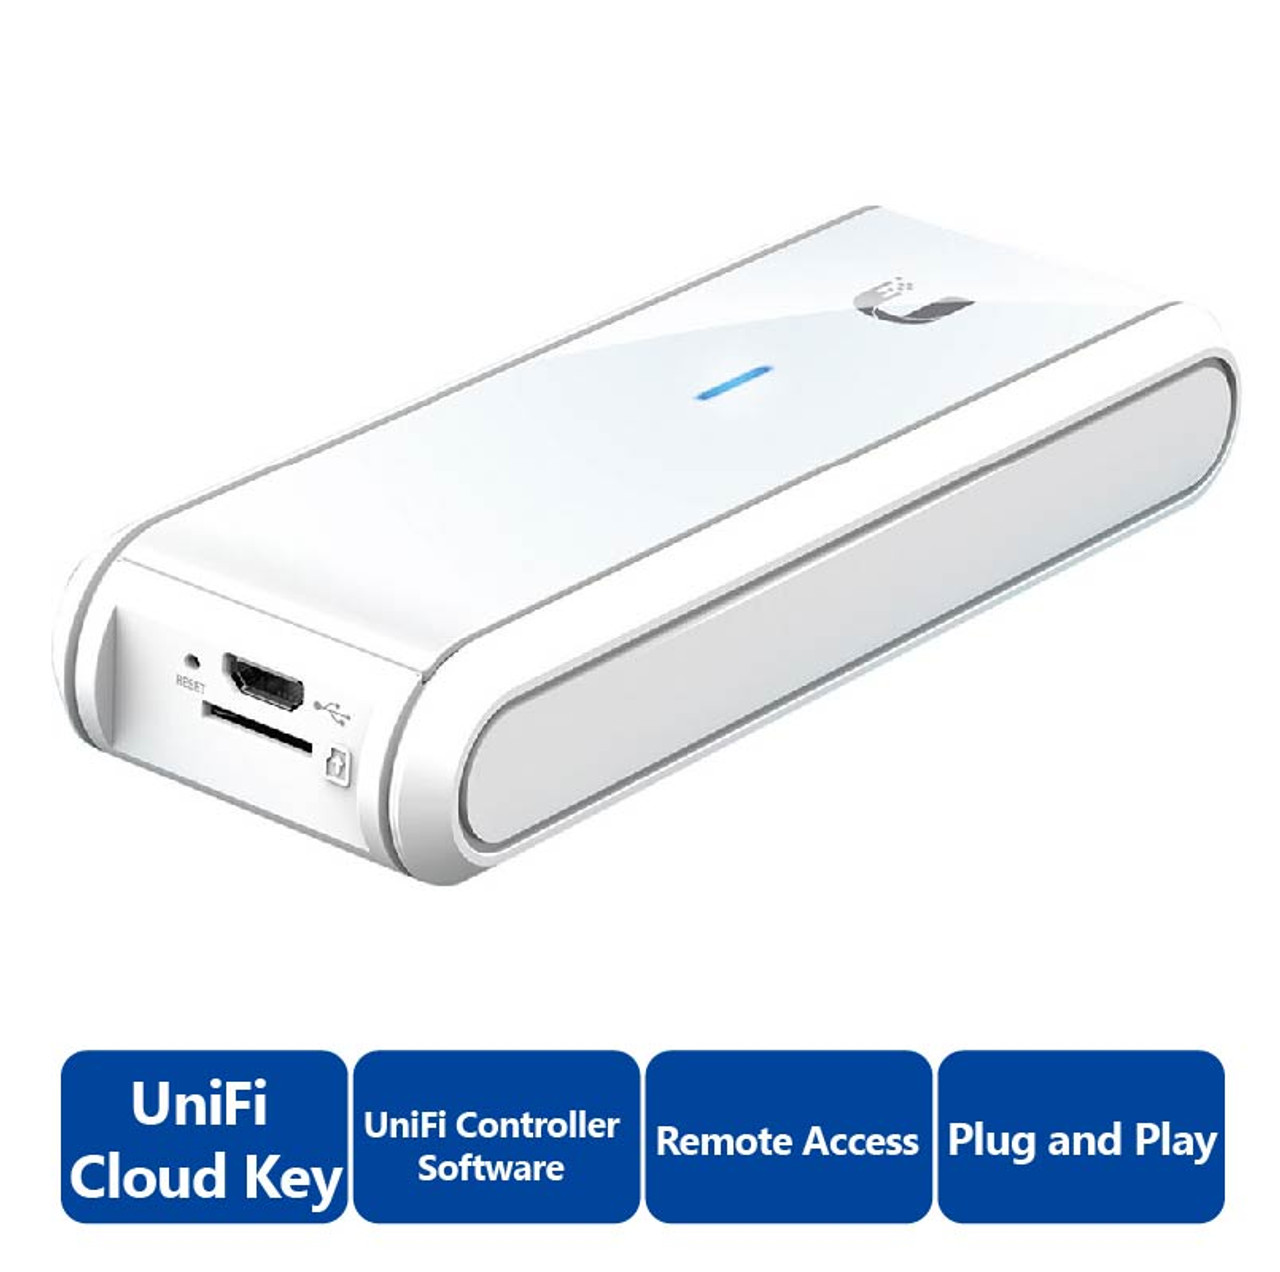 Ubiquiti UC-CK-US UniFi Cloud Key - Remote Access, UniFi Controller Software